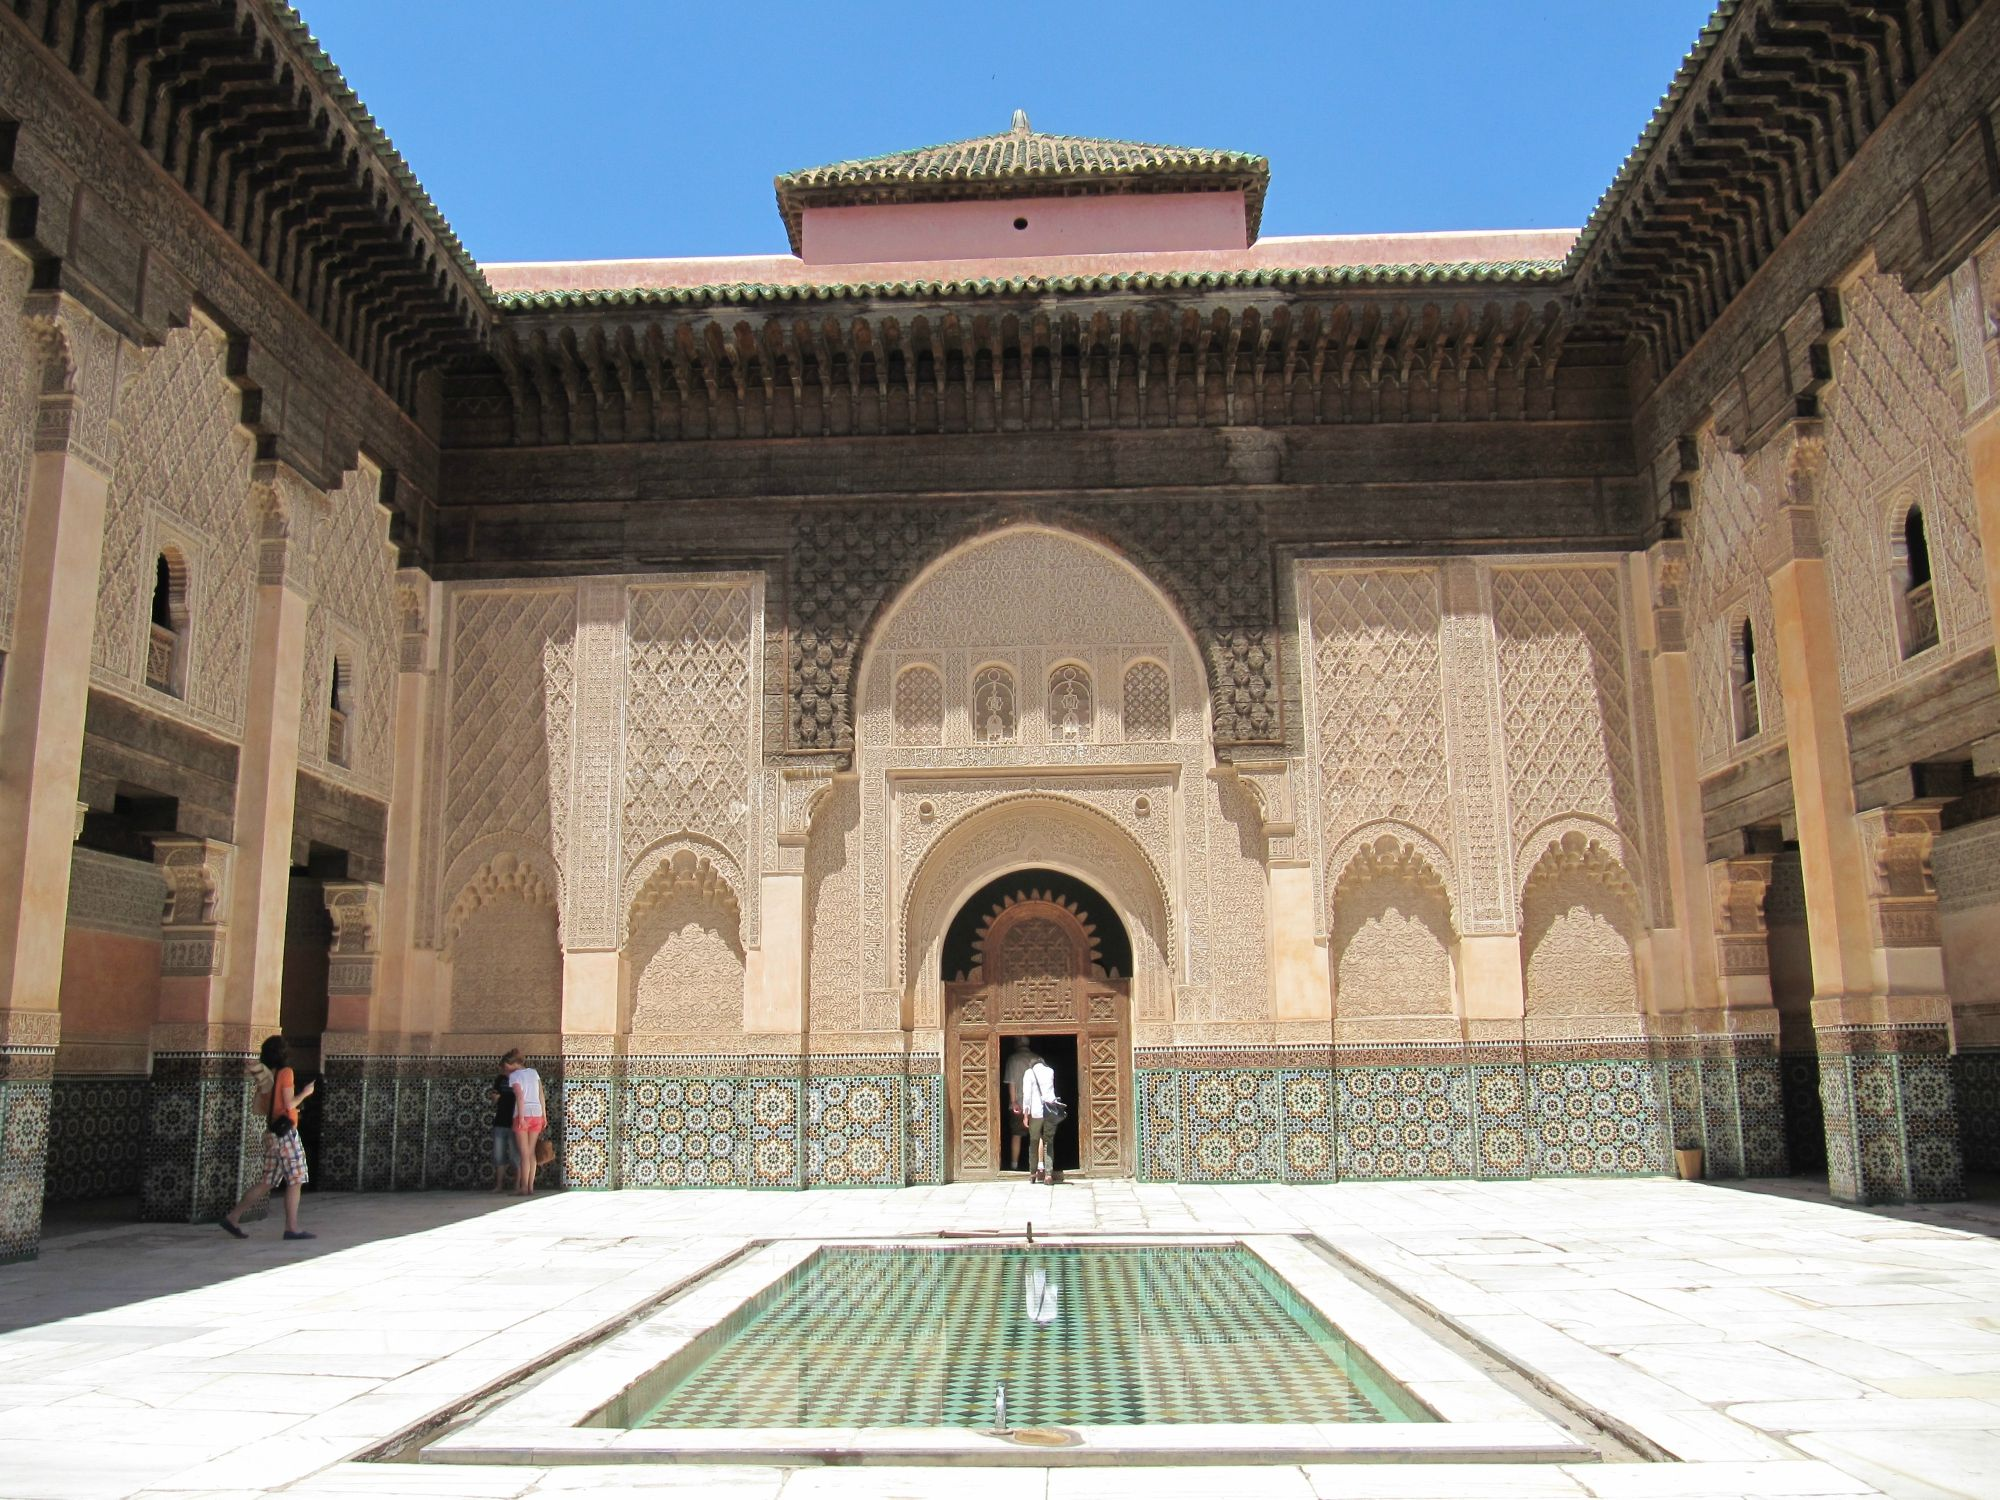 The 25 Most Popular Travel Destinations In The World | Business Insider  Marrakech, Morocco